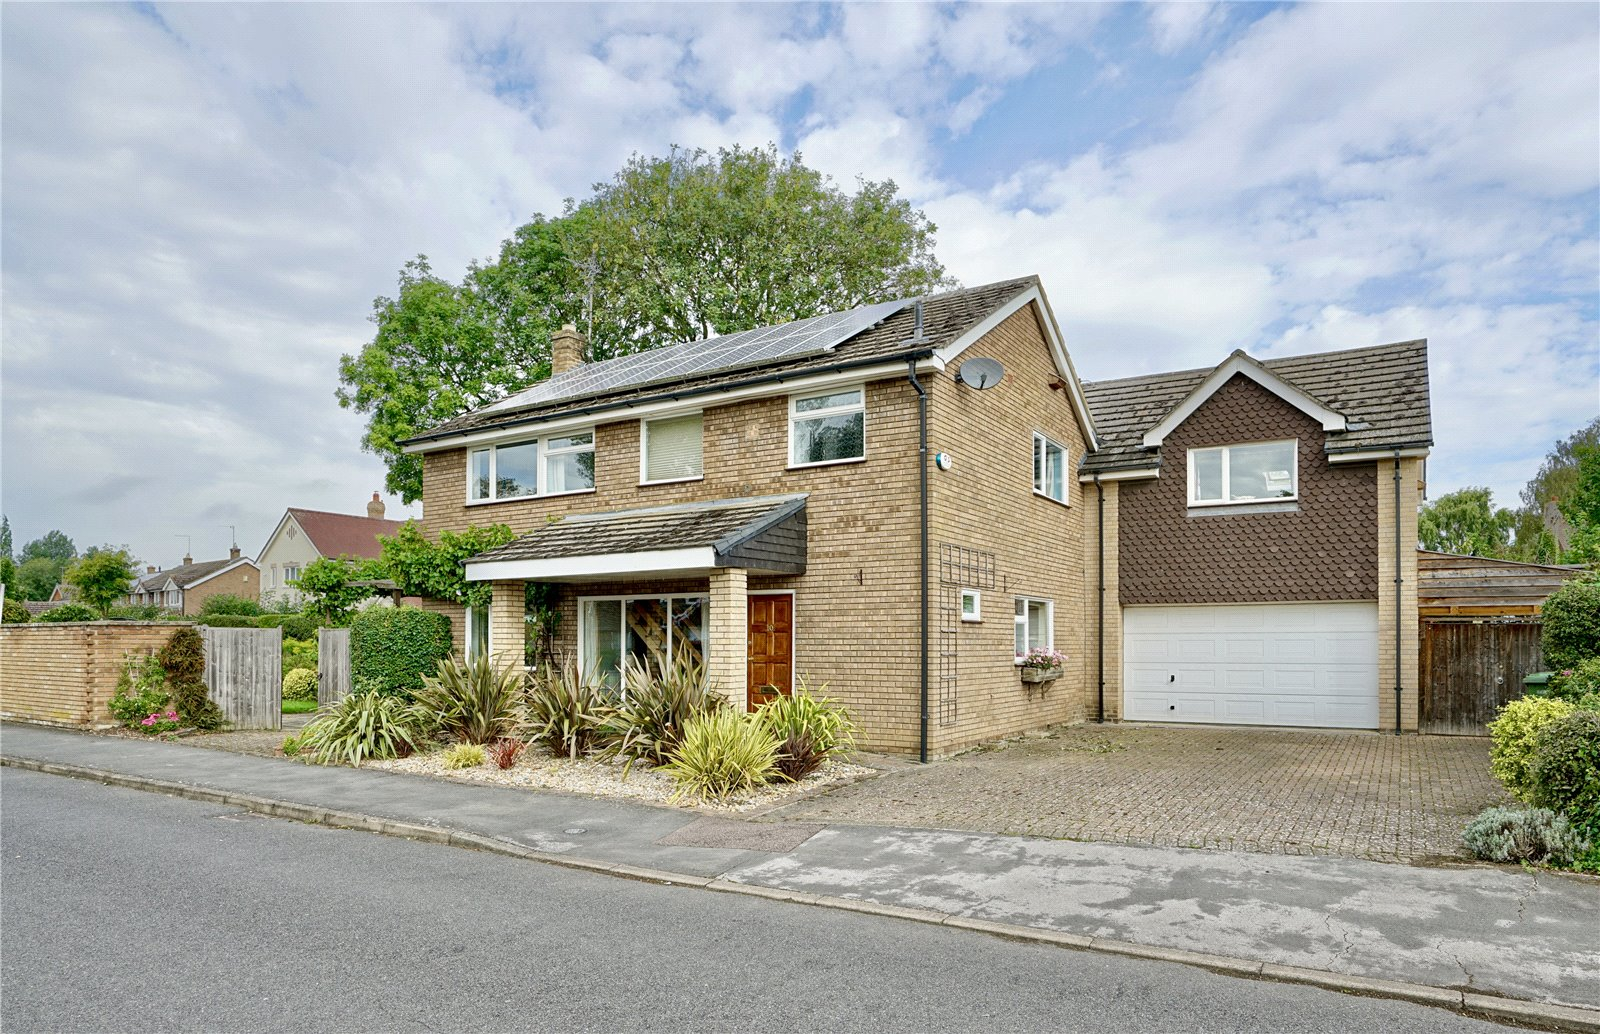 5 bed house for sale in Buckden, St Hughs Road, PE19 5UB 0